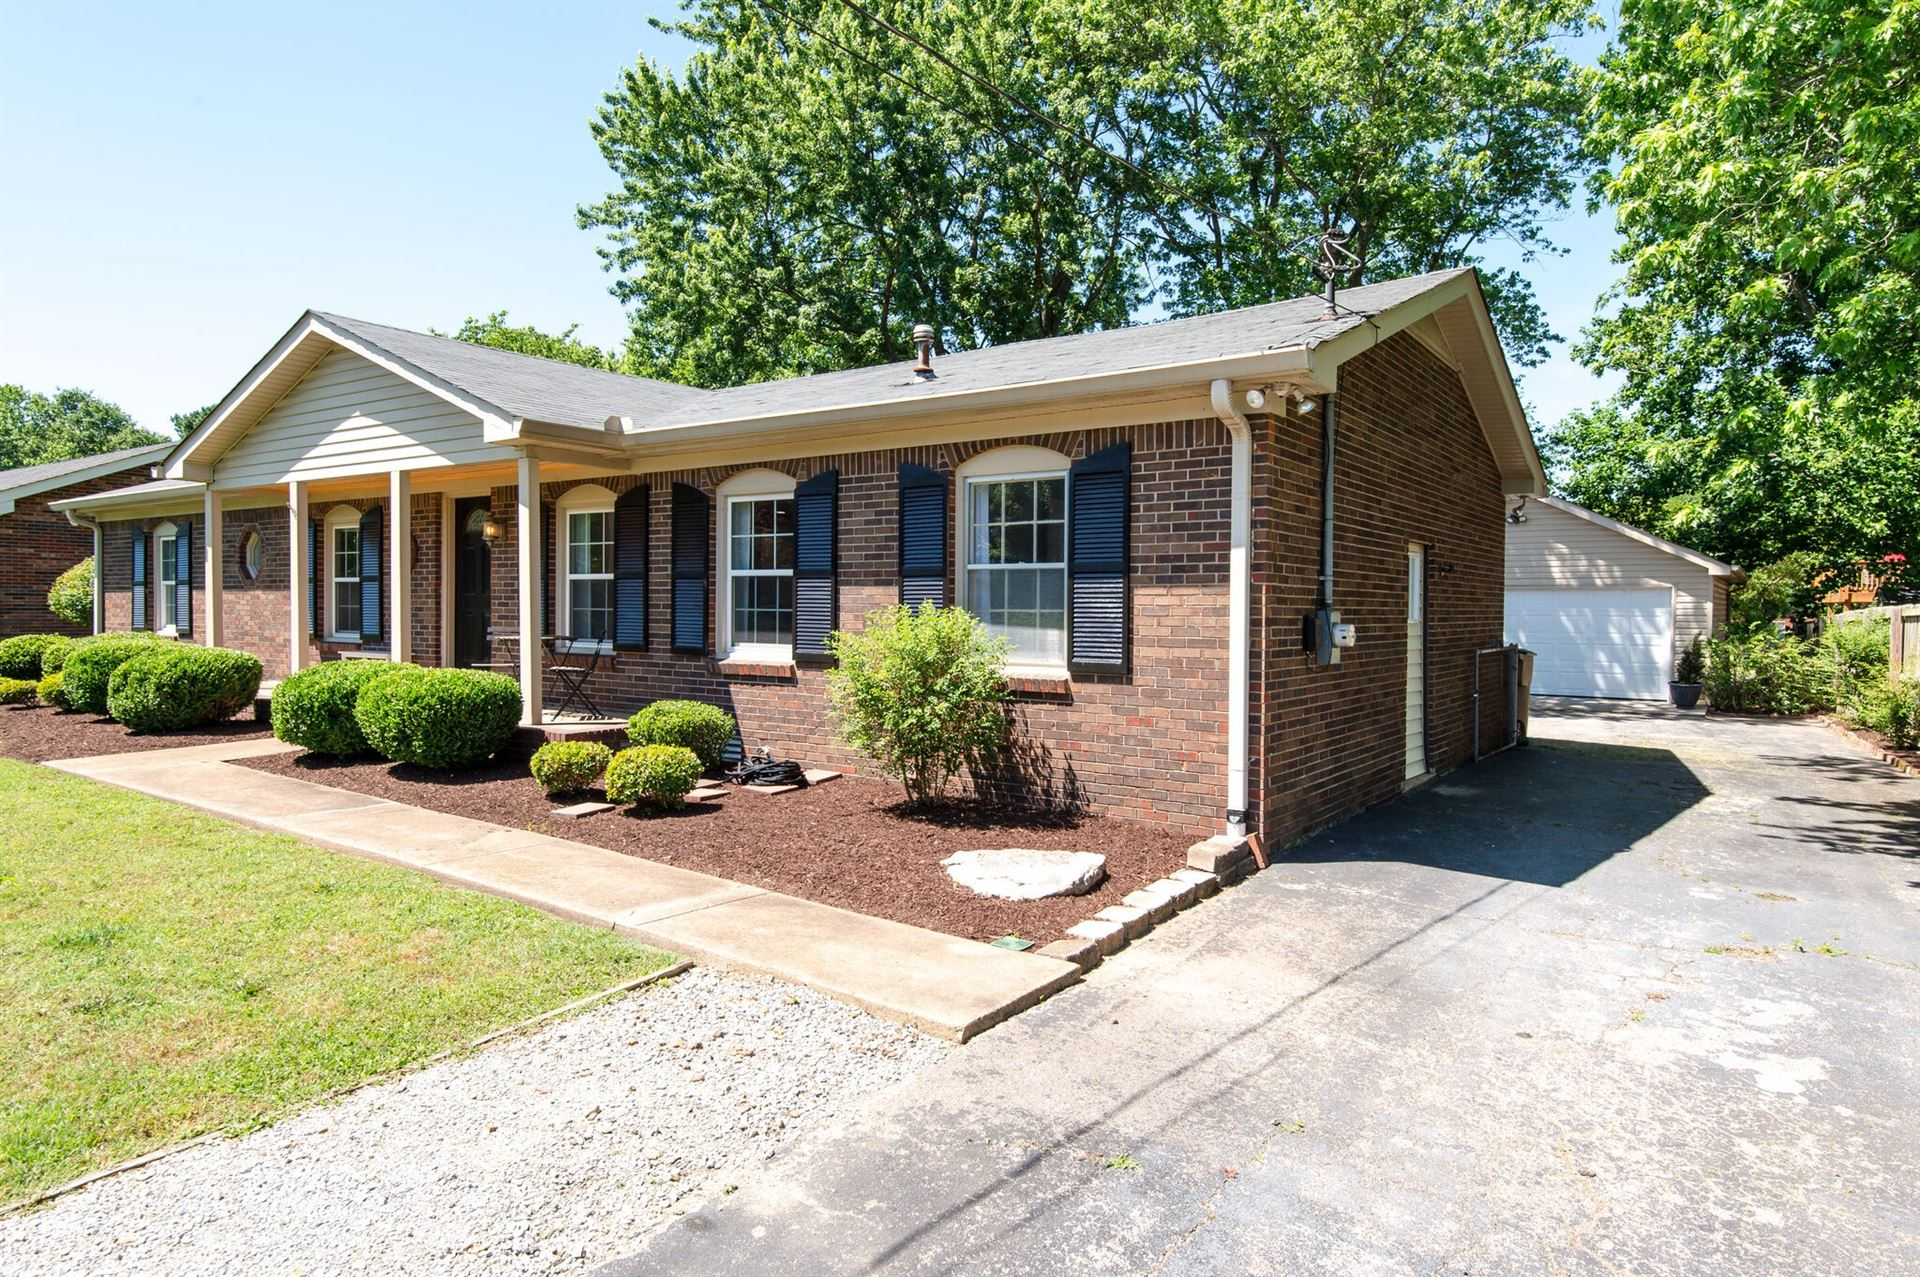 Photo of 644 Tobylynn Dr, Nashville, TN 37211 (MLS # 2156738)